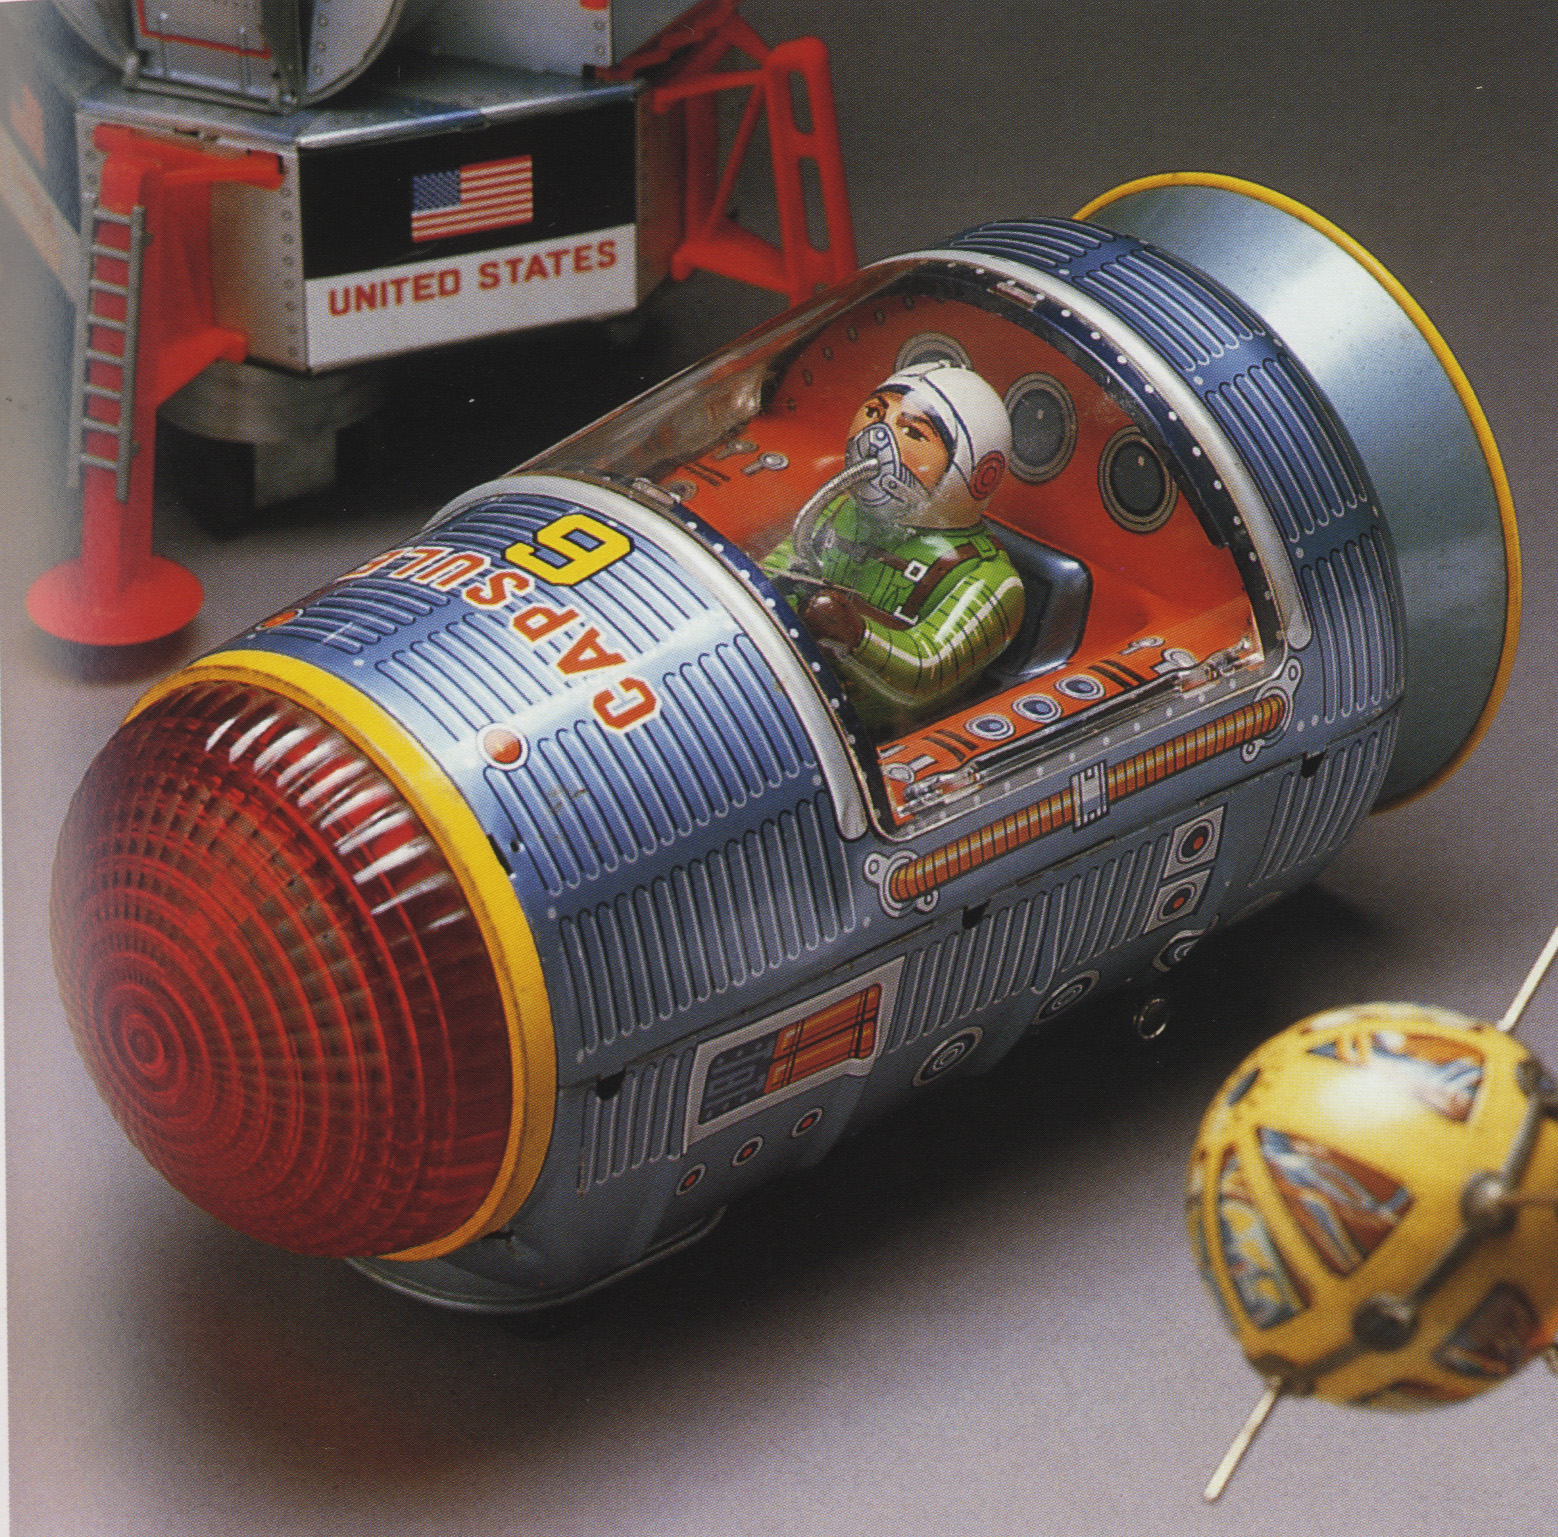 Moon Explorer, tin toy by Yonezawa, 1960s; andCapsule 6, tin toy by Masudaya, 1960s; both photographs by Yukio Shimizu, reproduced inRobots, Spaceships and Other Tin Toys, Taschen, 2006 (first edition 1996)